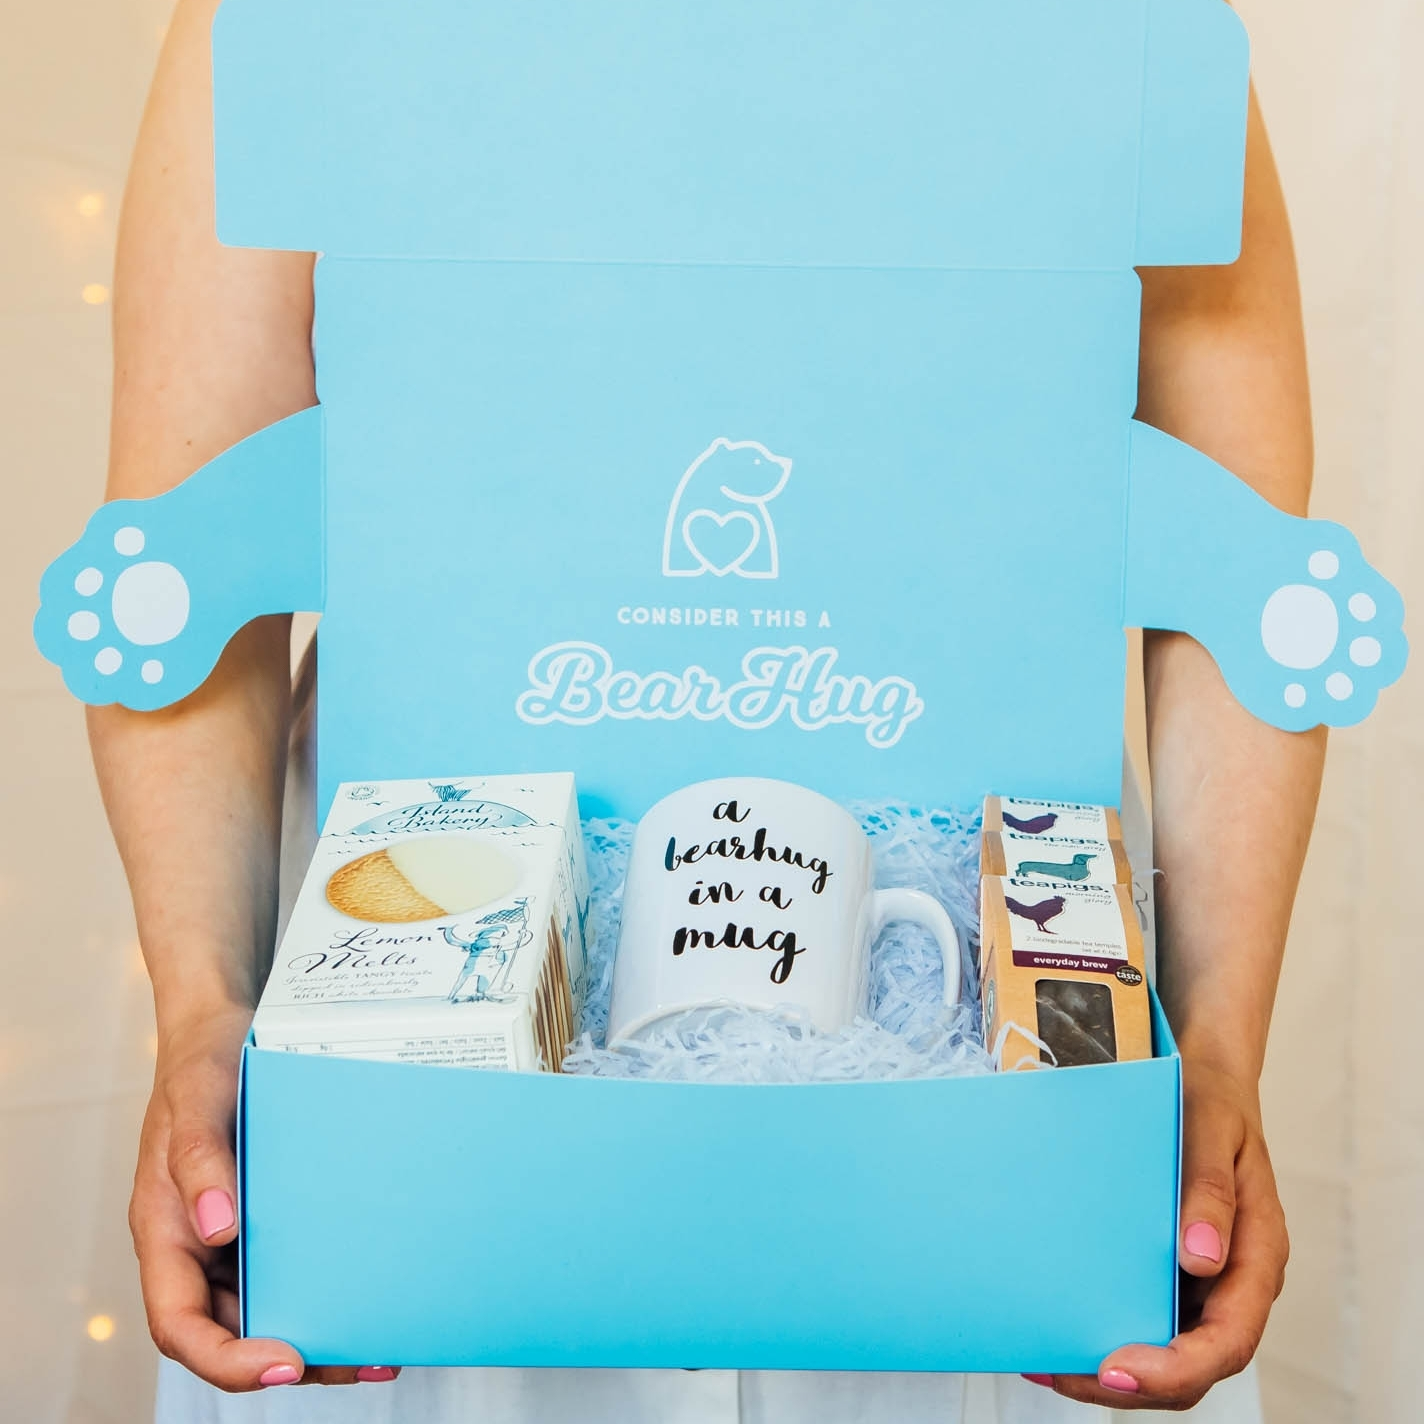 thank you gifts for teachers to send bearhugs hug in a box